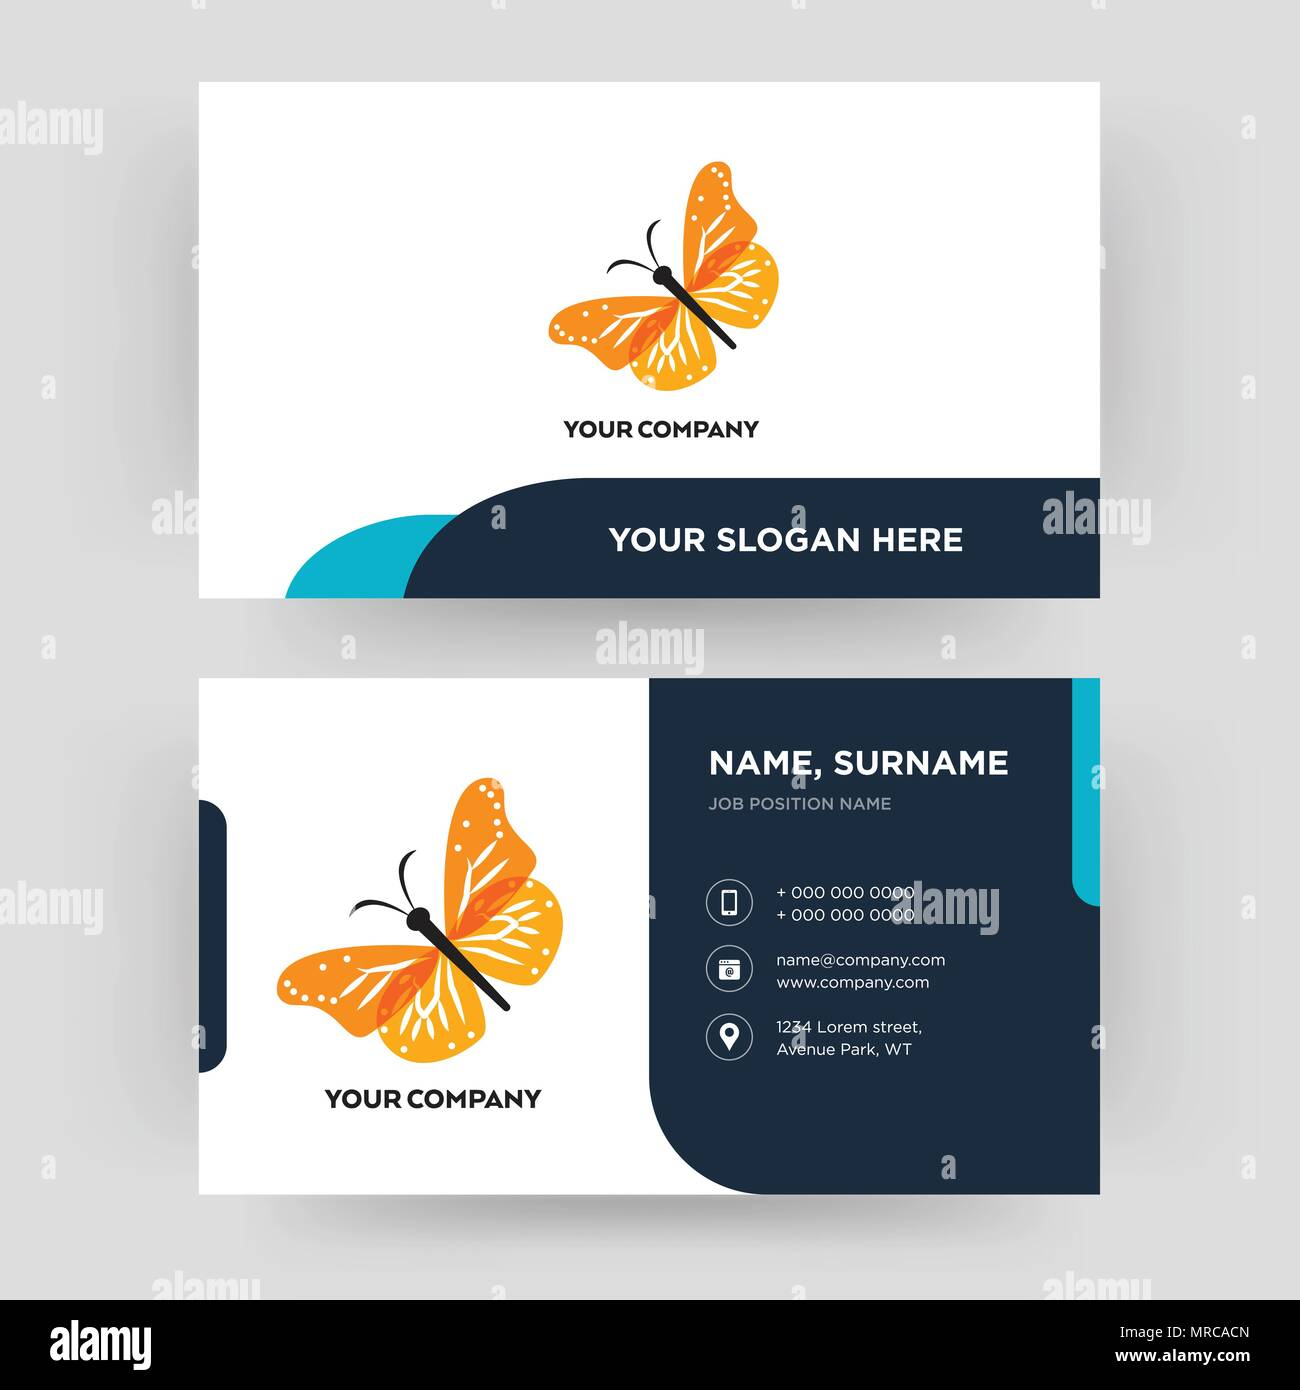 monarch butterfly, business card design template, Visiting for your ...